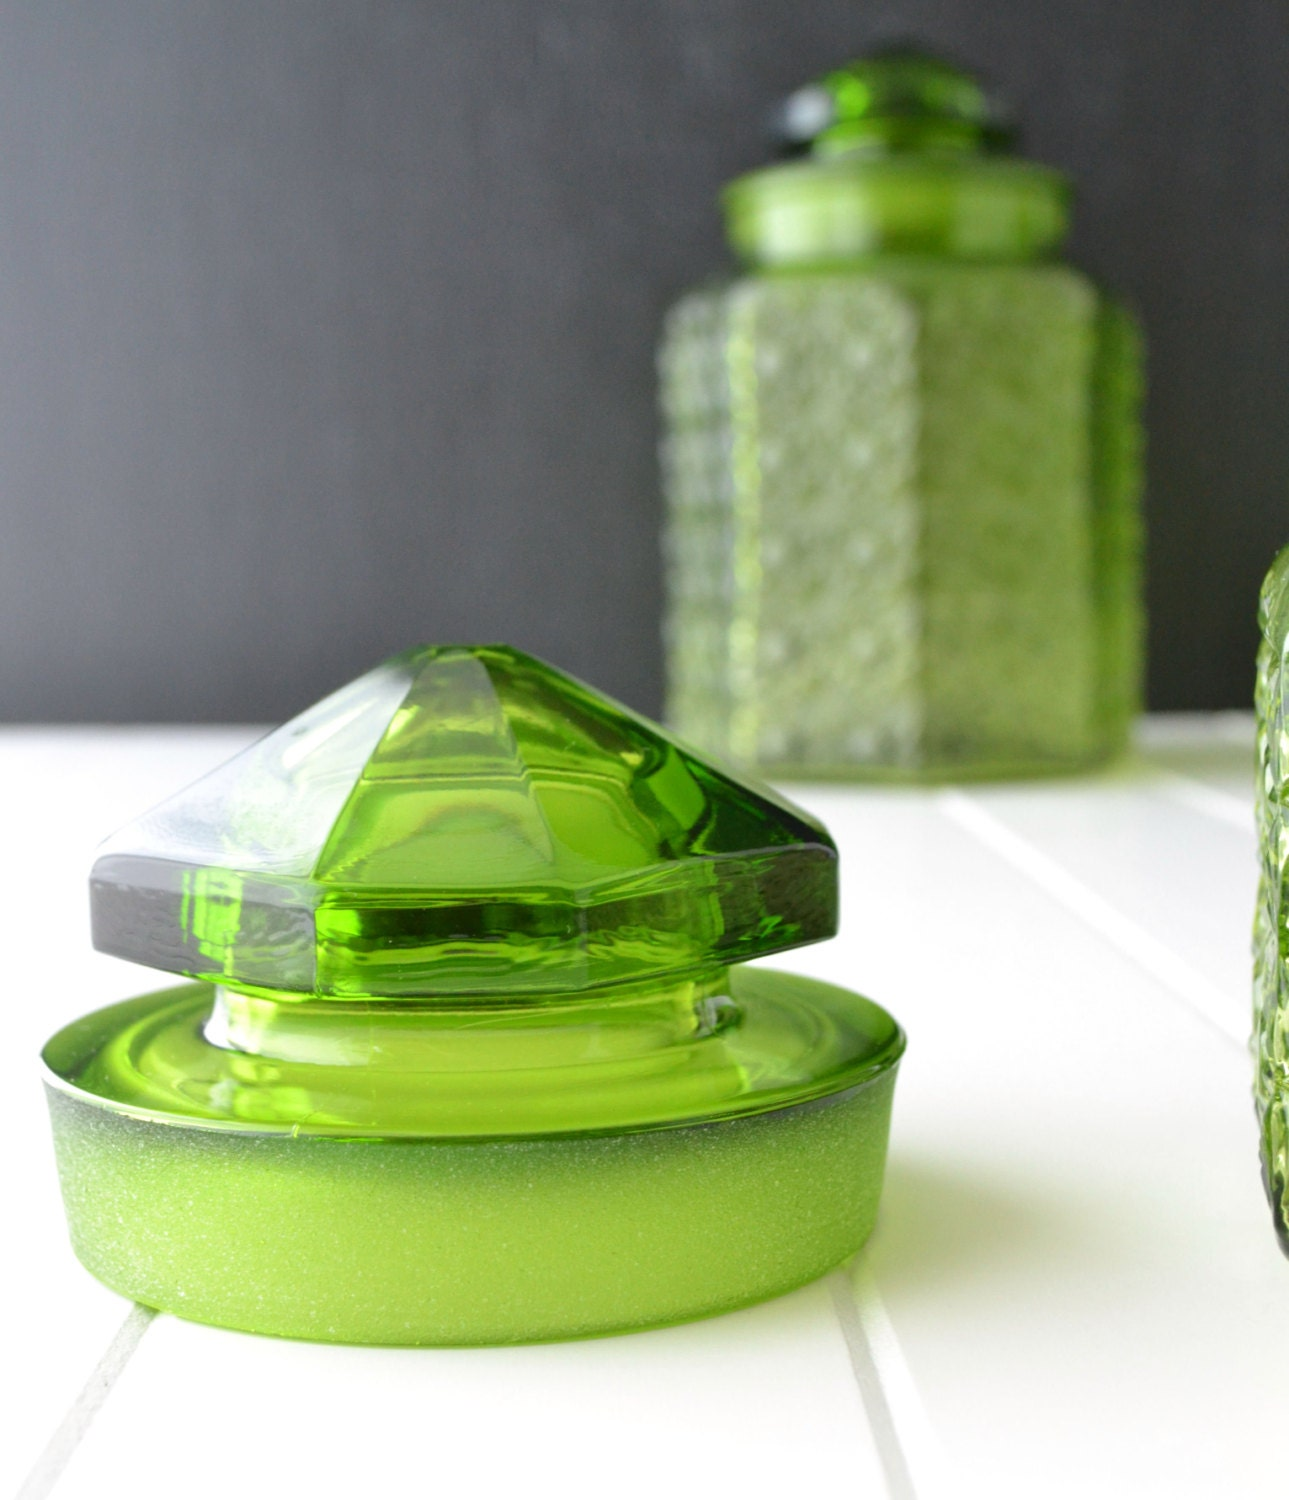 Vintage Green Kitchen: Green Glass Canisters Vintage Kitchen Canisters L E By